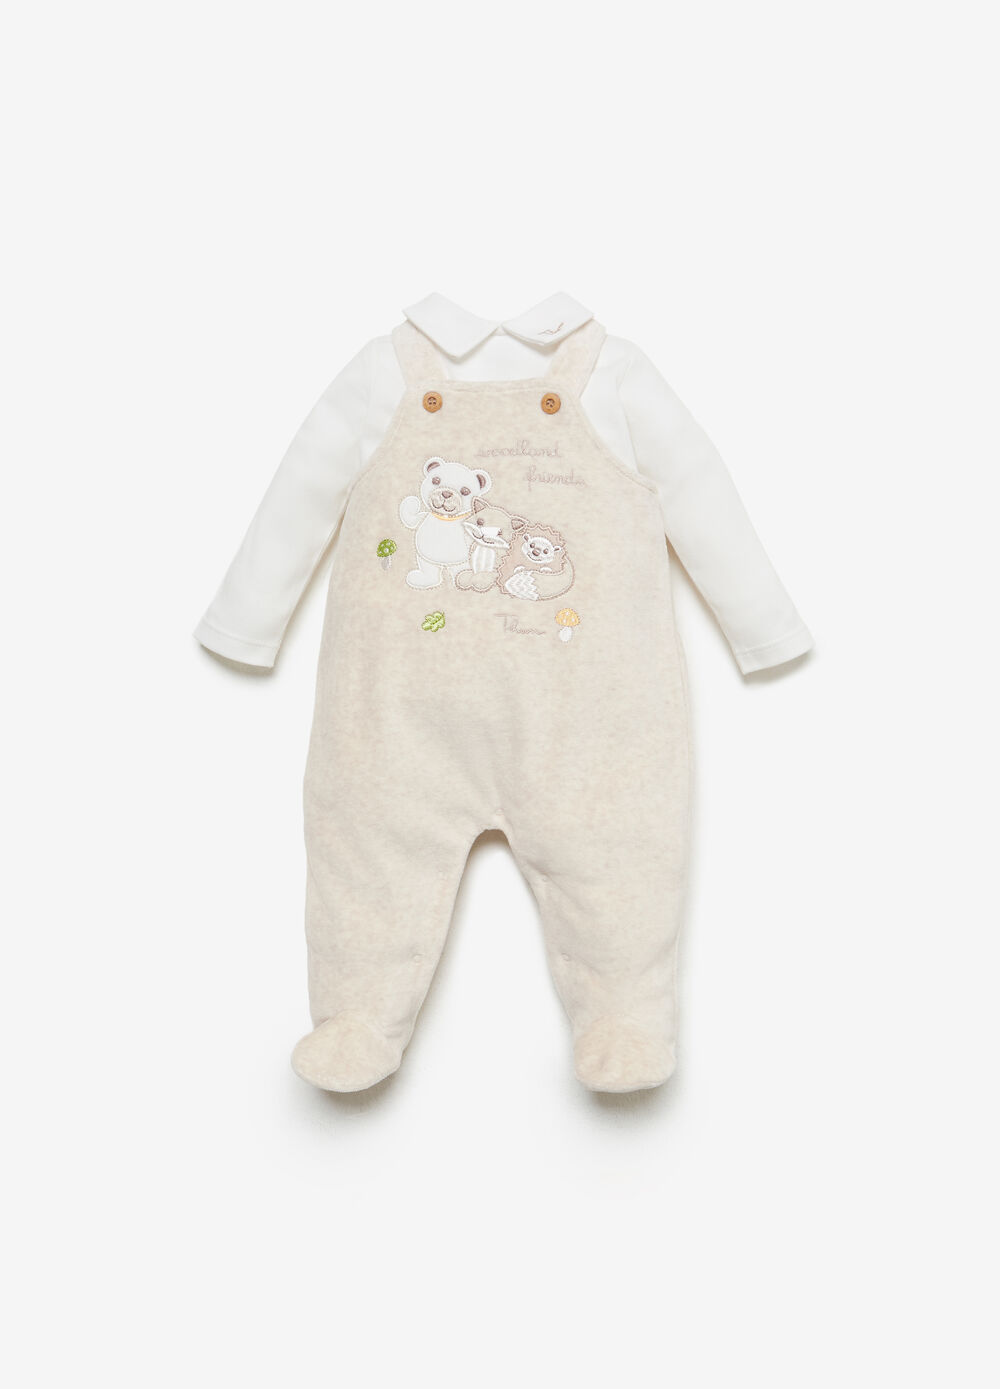 THUN Teddy dungarees outfit